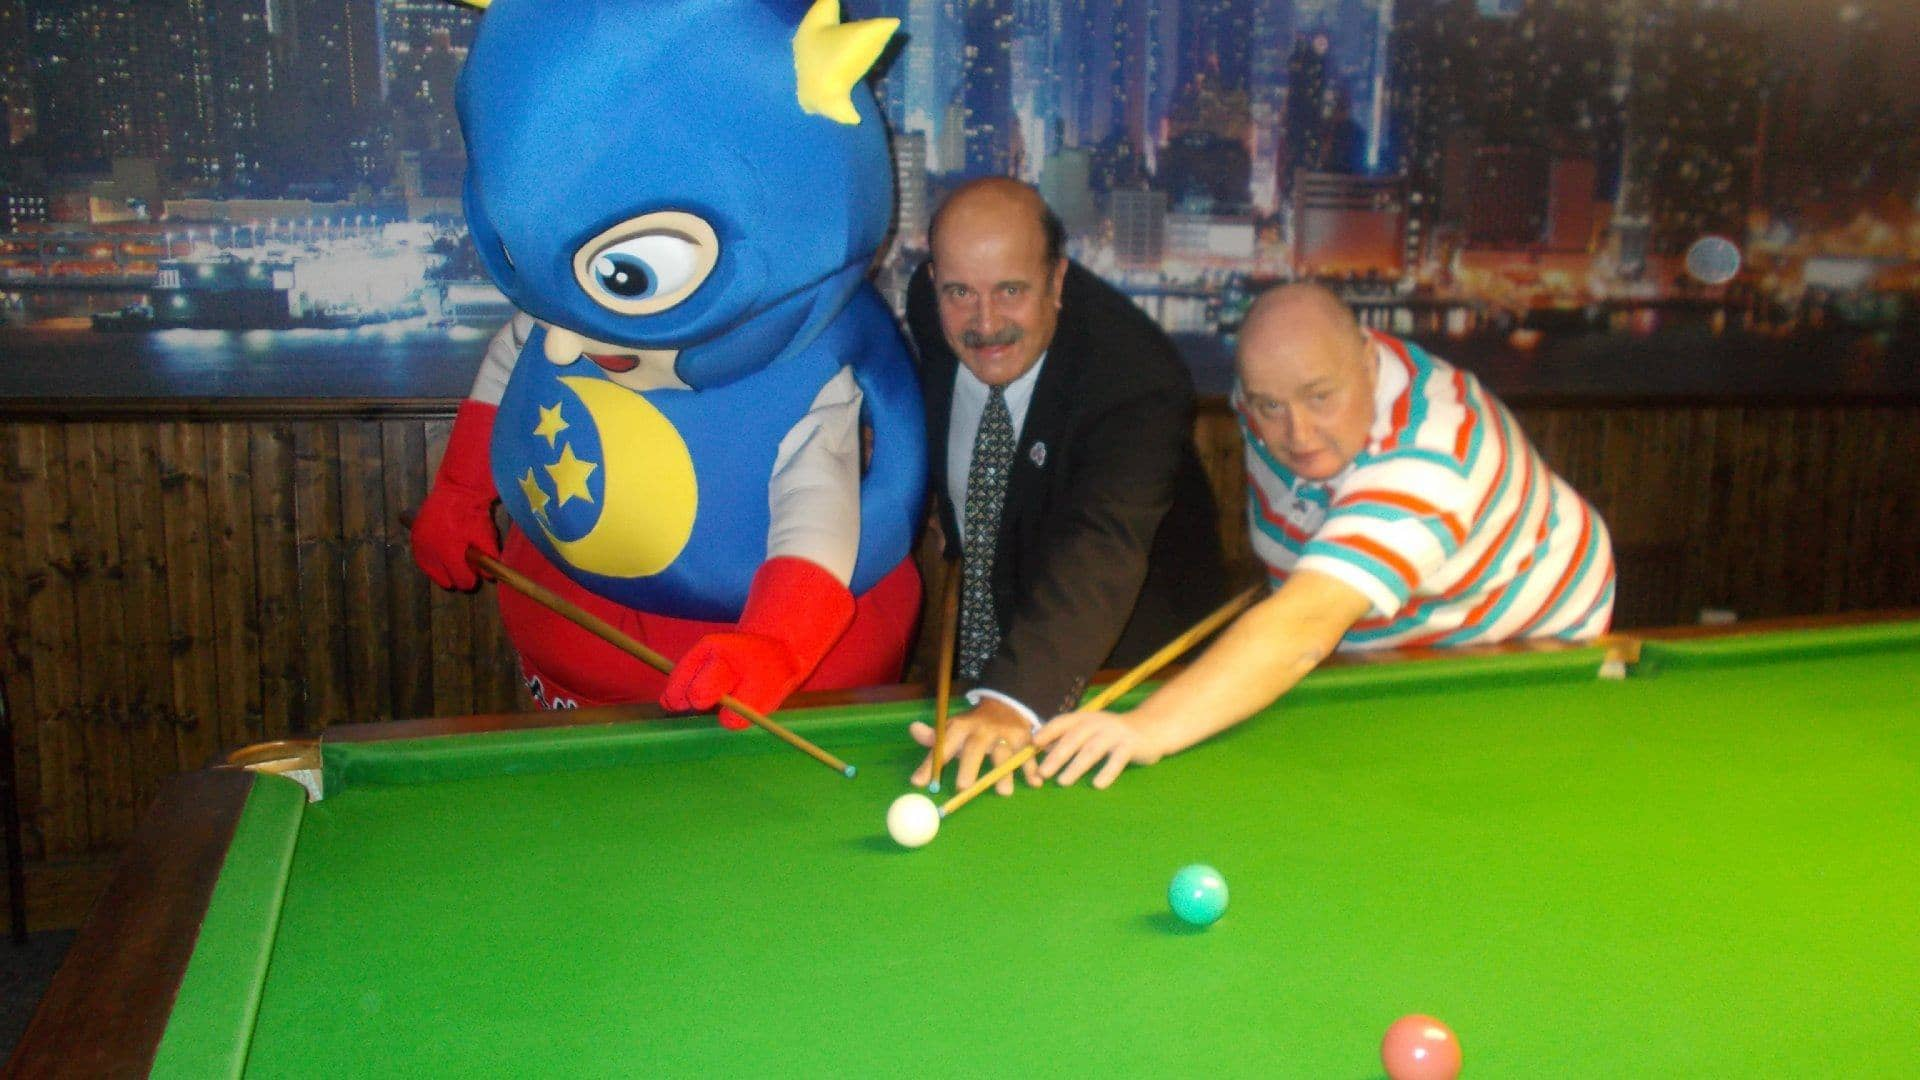 Snooker Legend Willie Thorne and The DreamMaker Kids